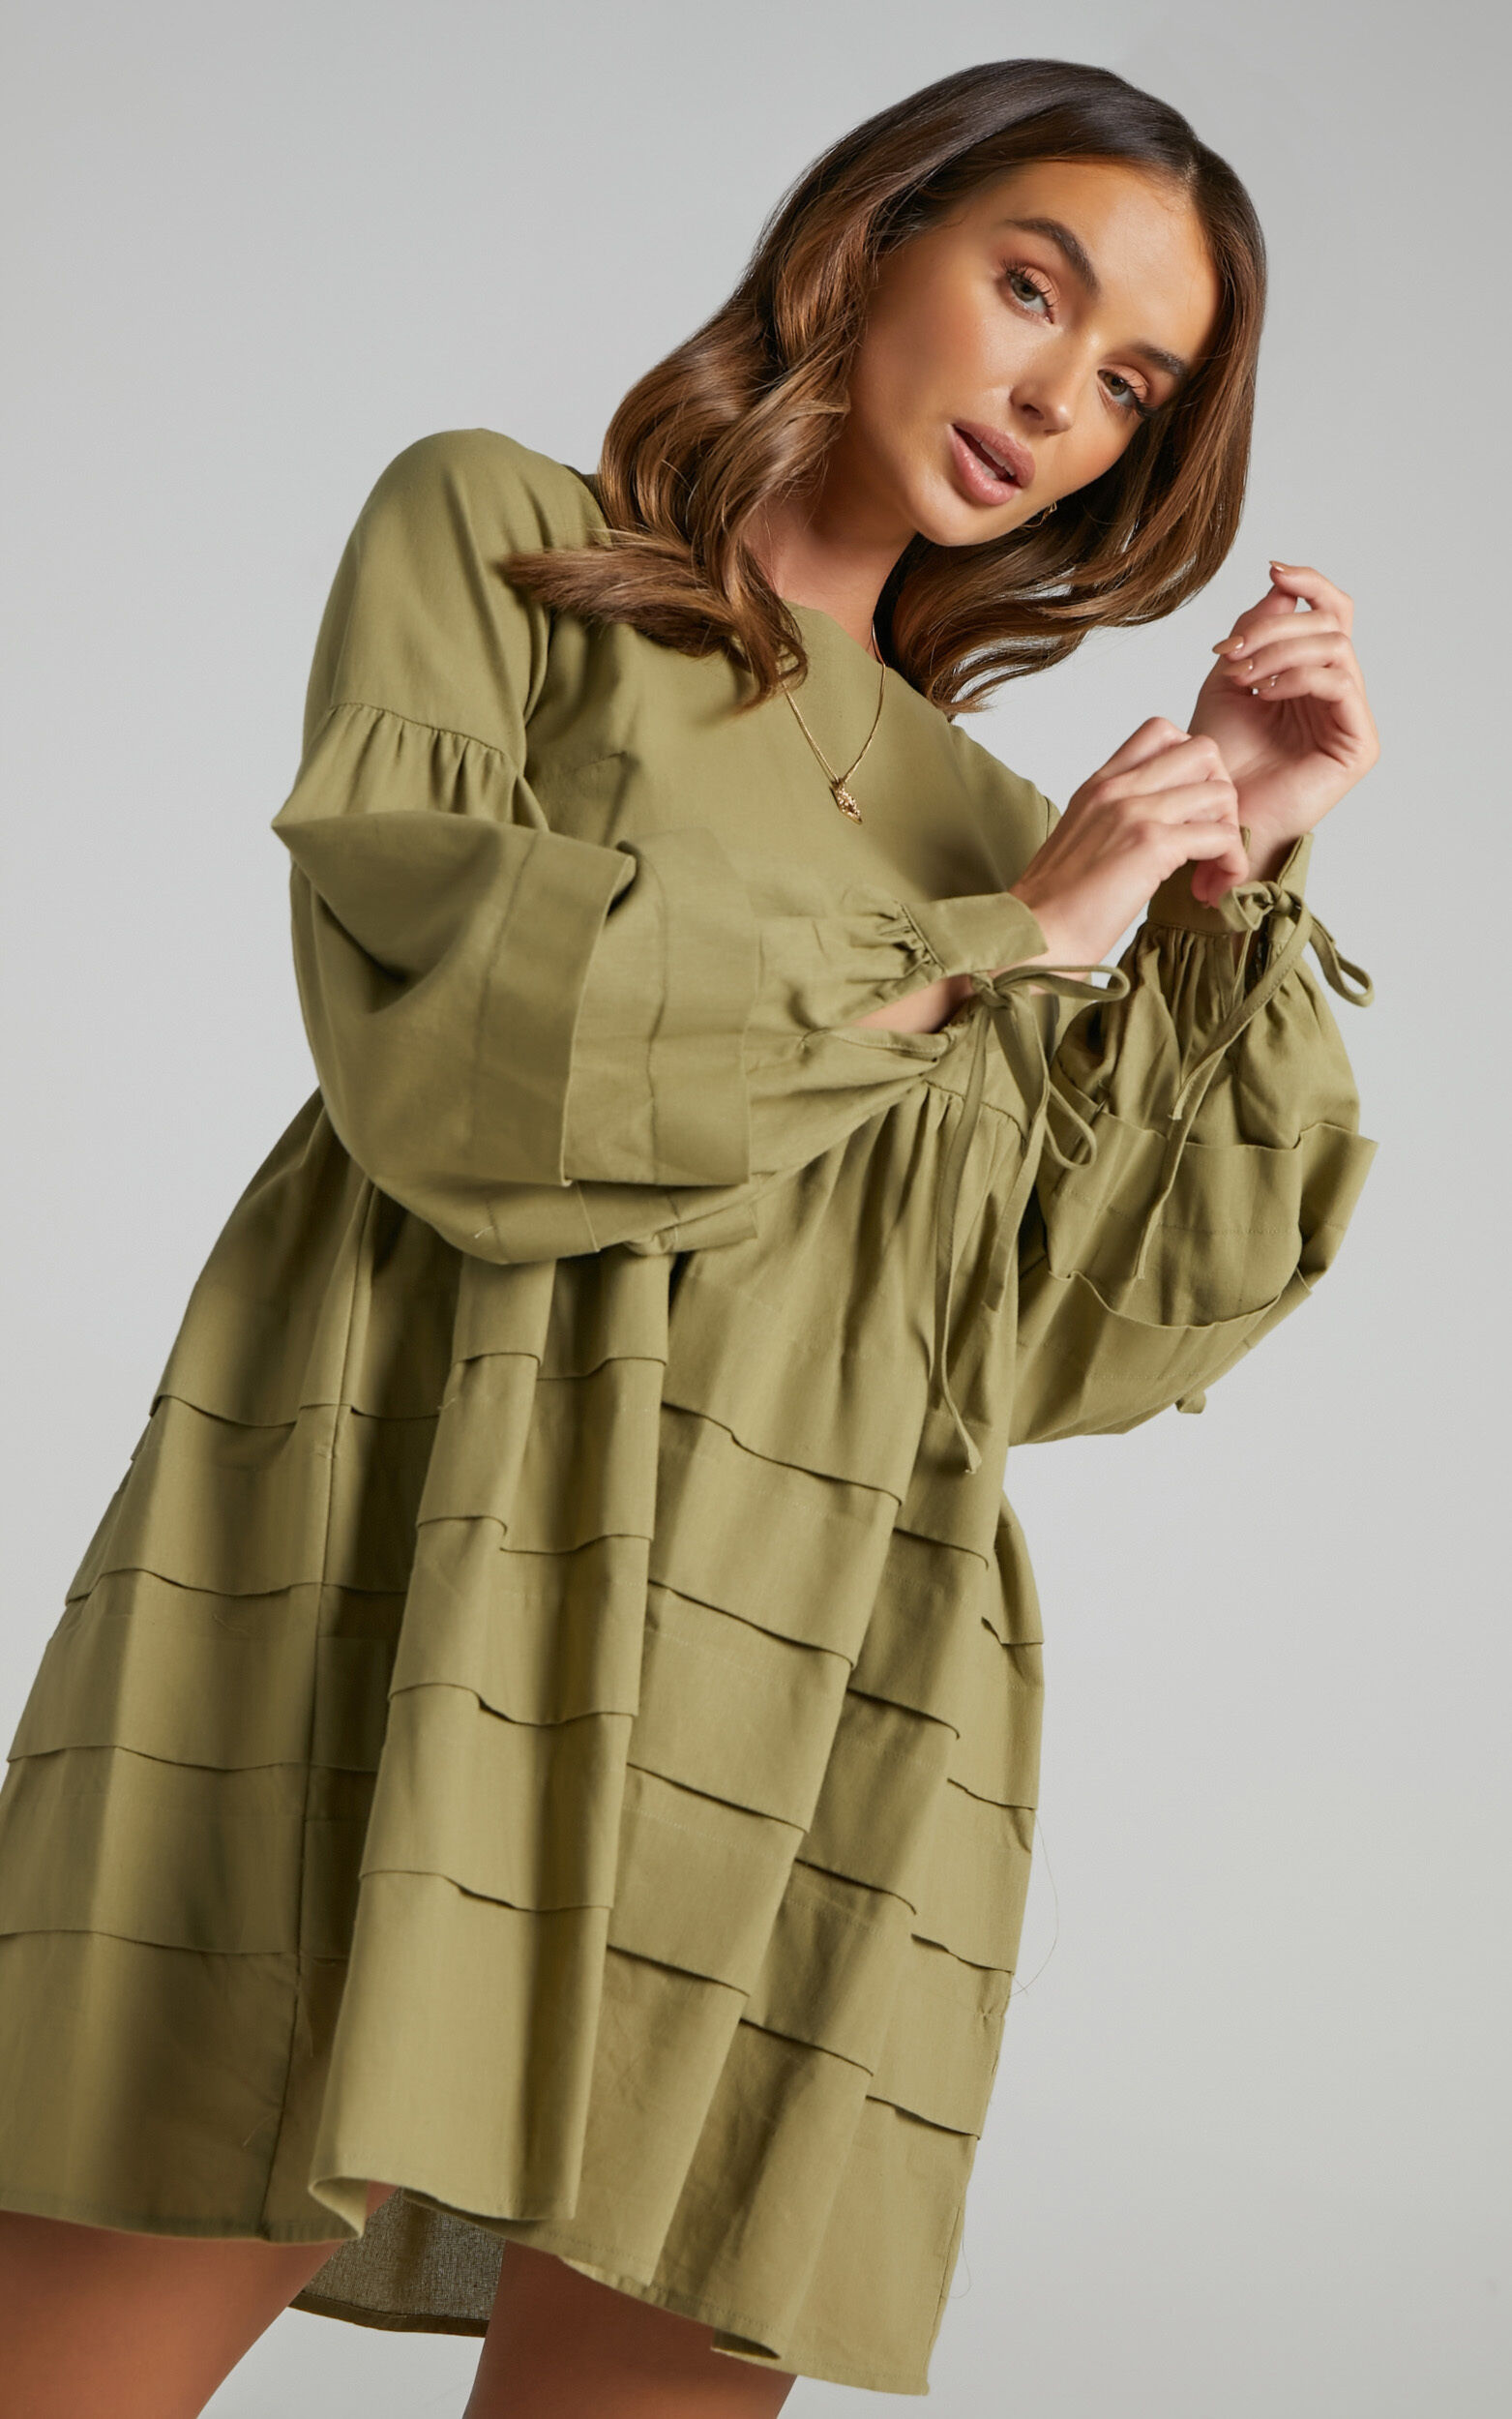 Jefferies Long Sleeve Pin Tuck Dress in Khaki - 06, GRN2, super-hi-res image number null